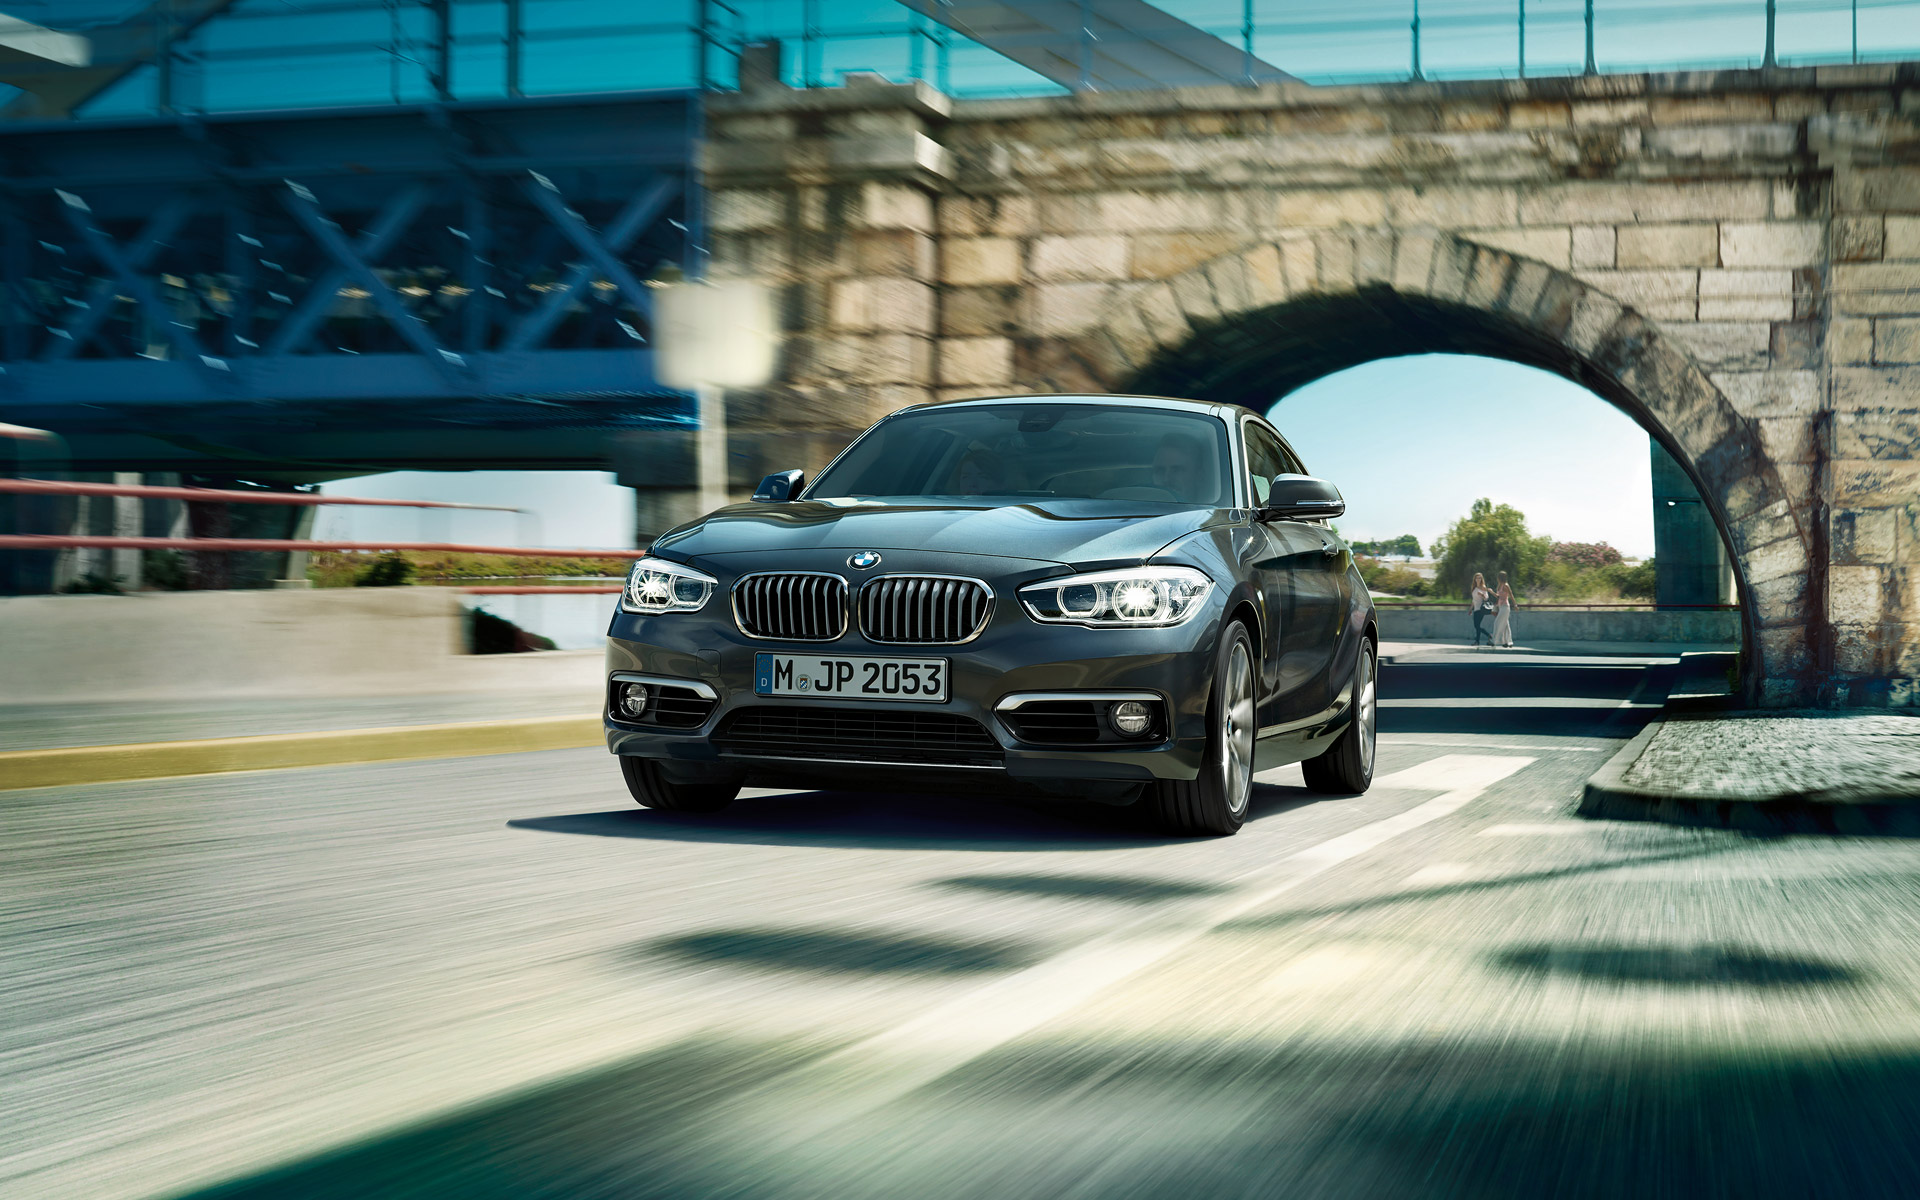 A3 Vs Serie 1 >> 2015 BMW 1 Series Facelift - Download Wallpapers